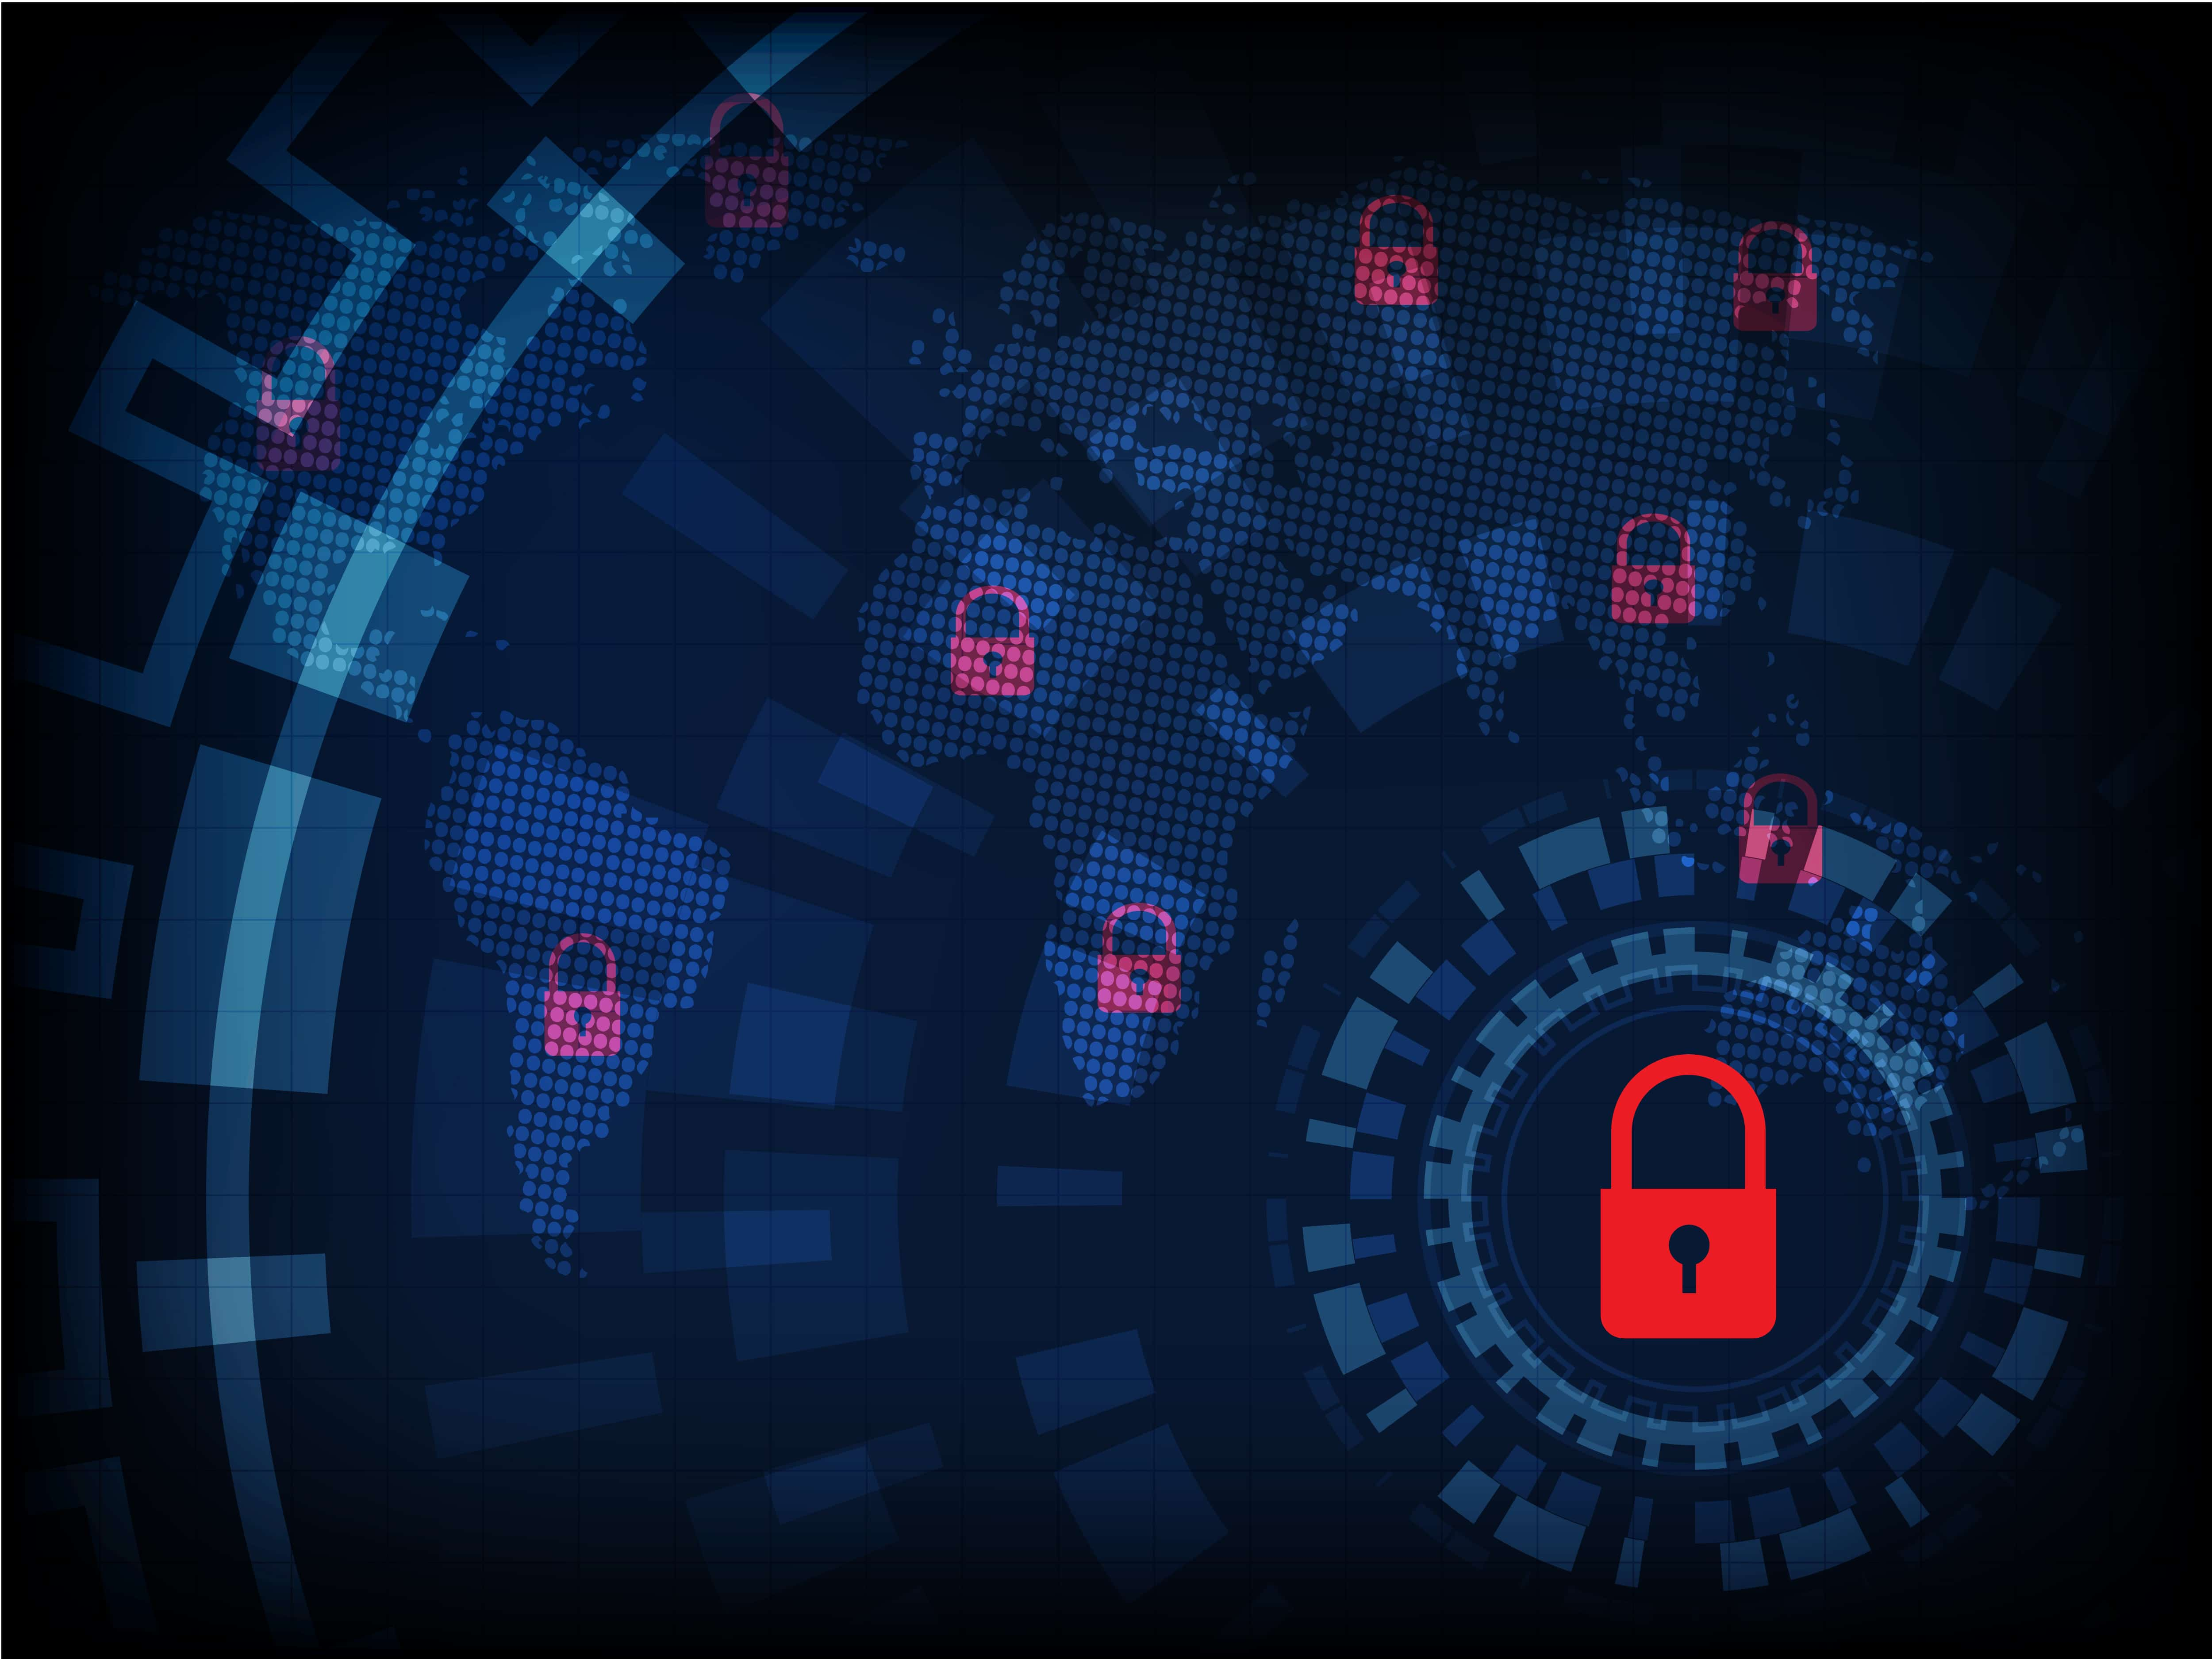 ransomware - Cybersecurity trends in 2019